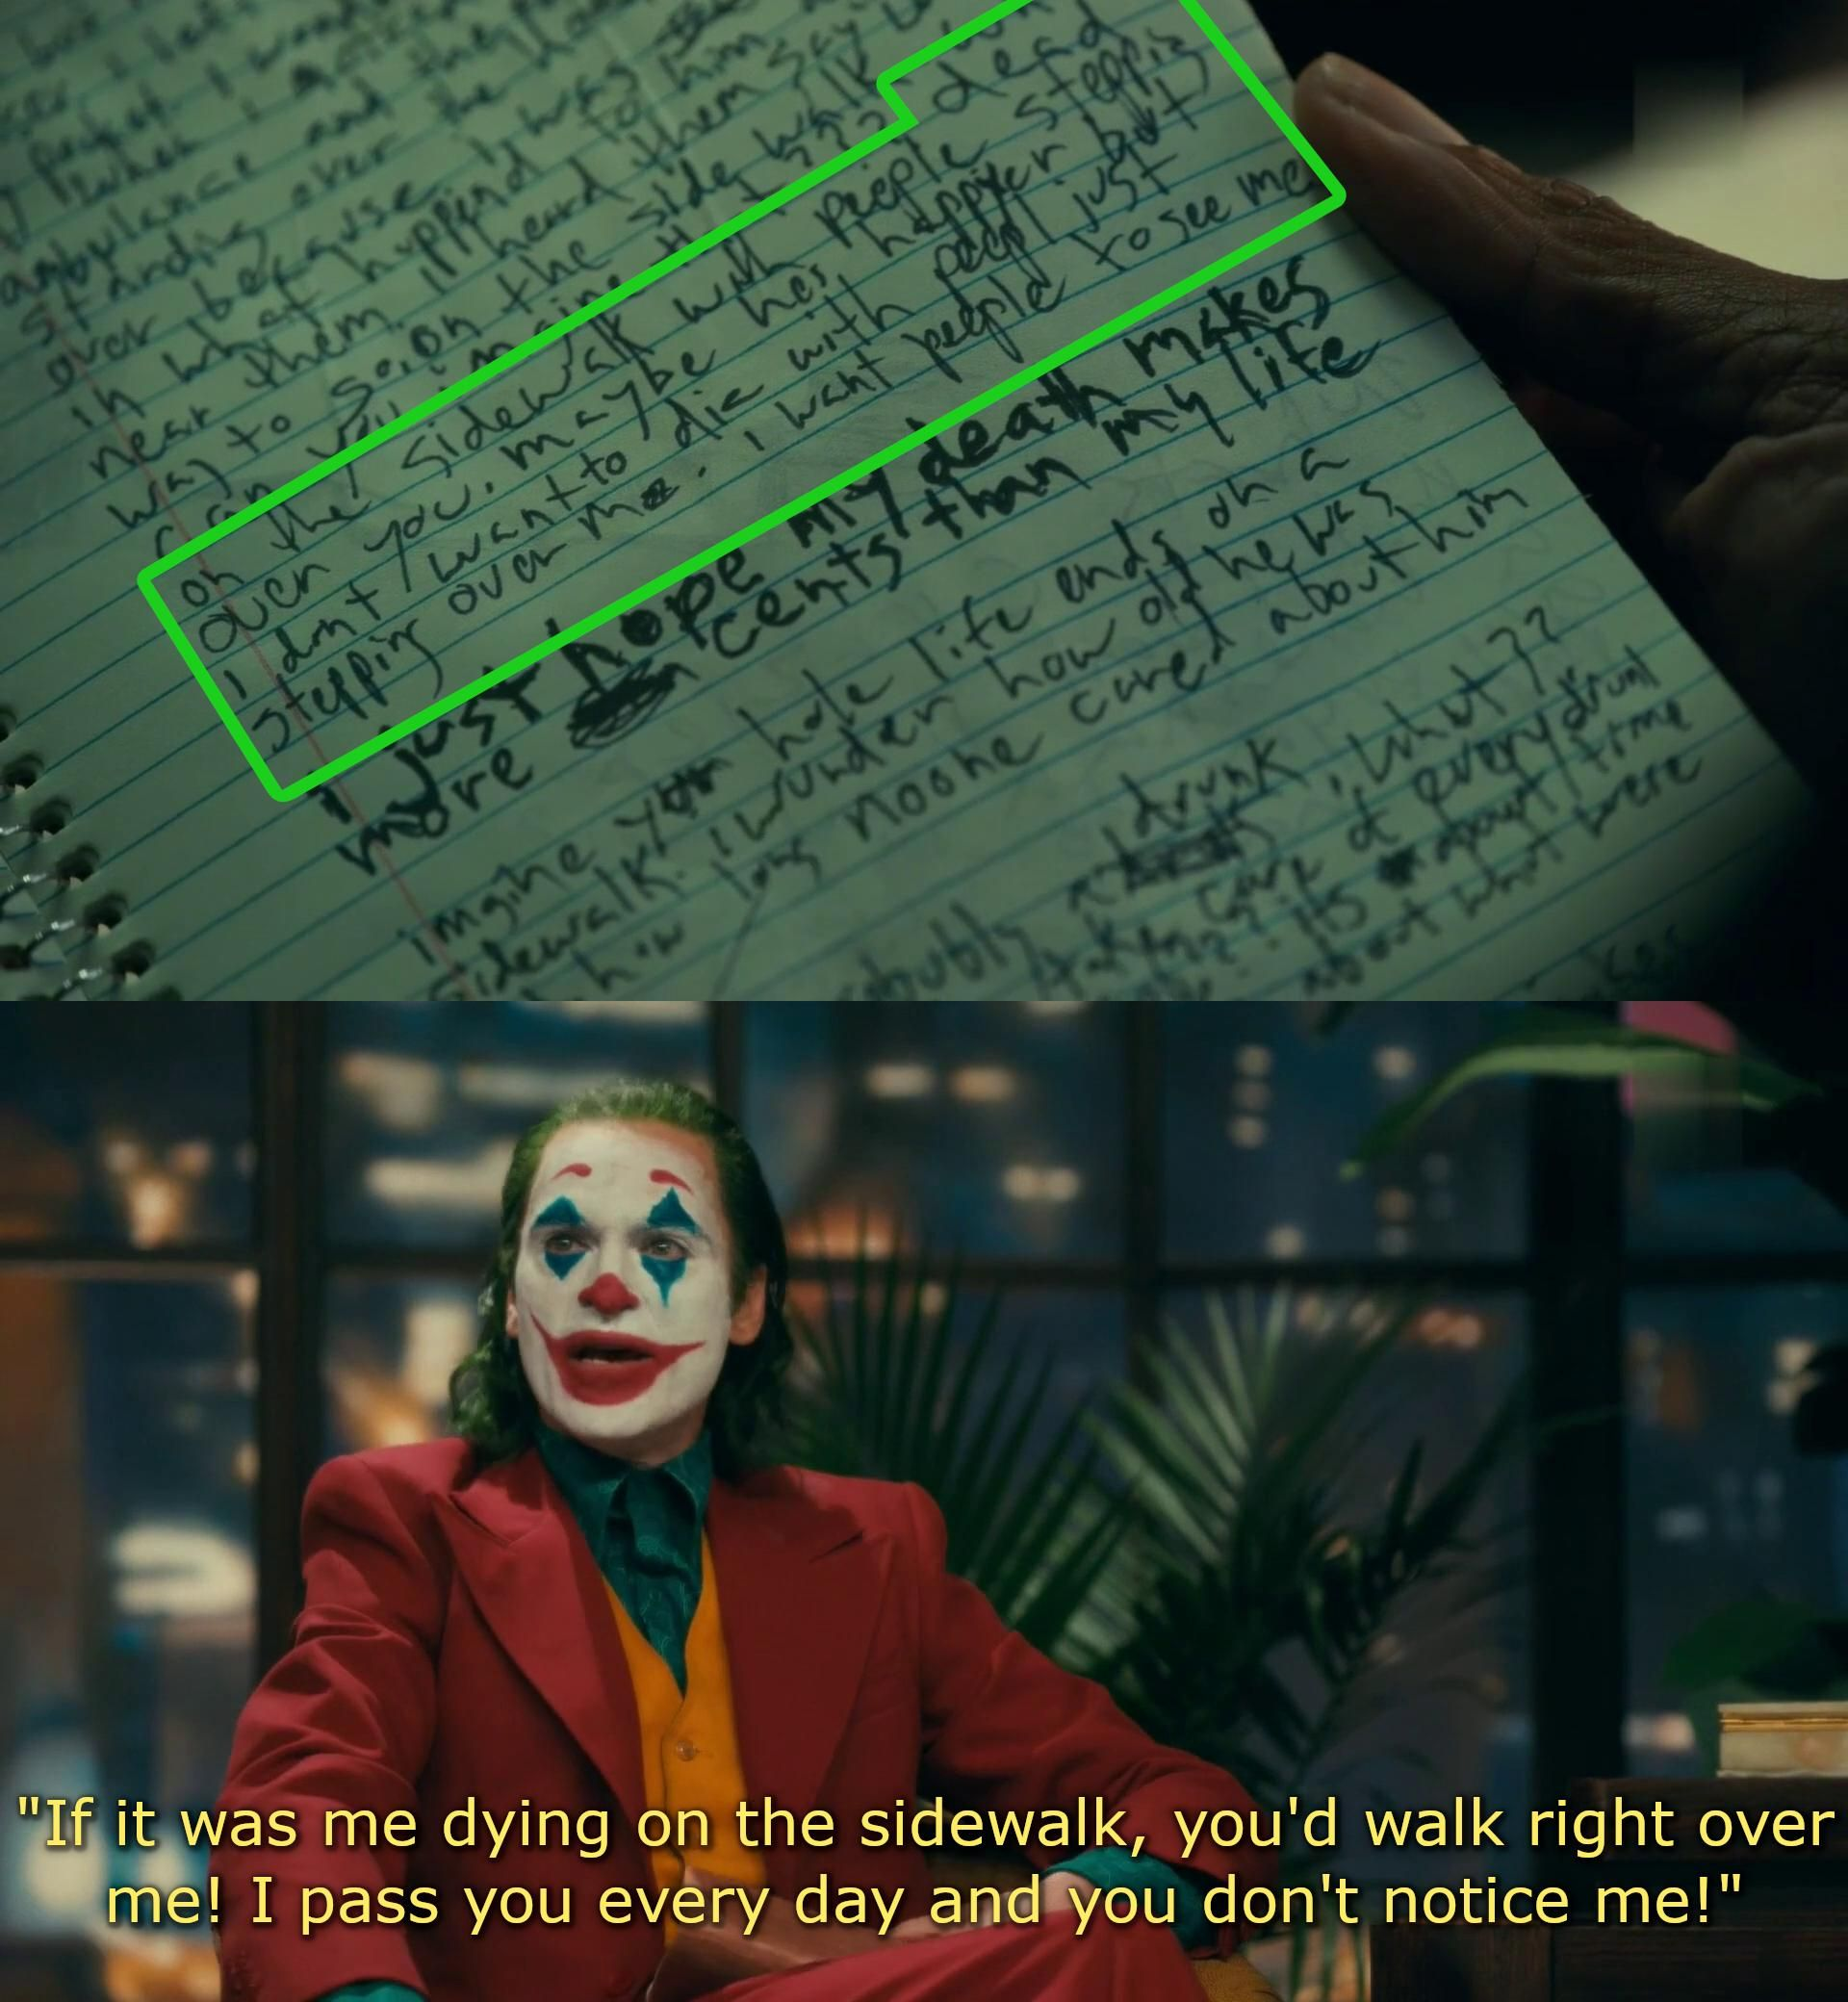 In joker 2019 the joke book contains a story about a